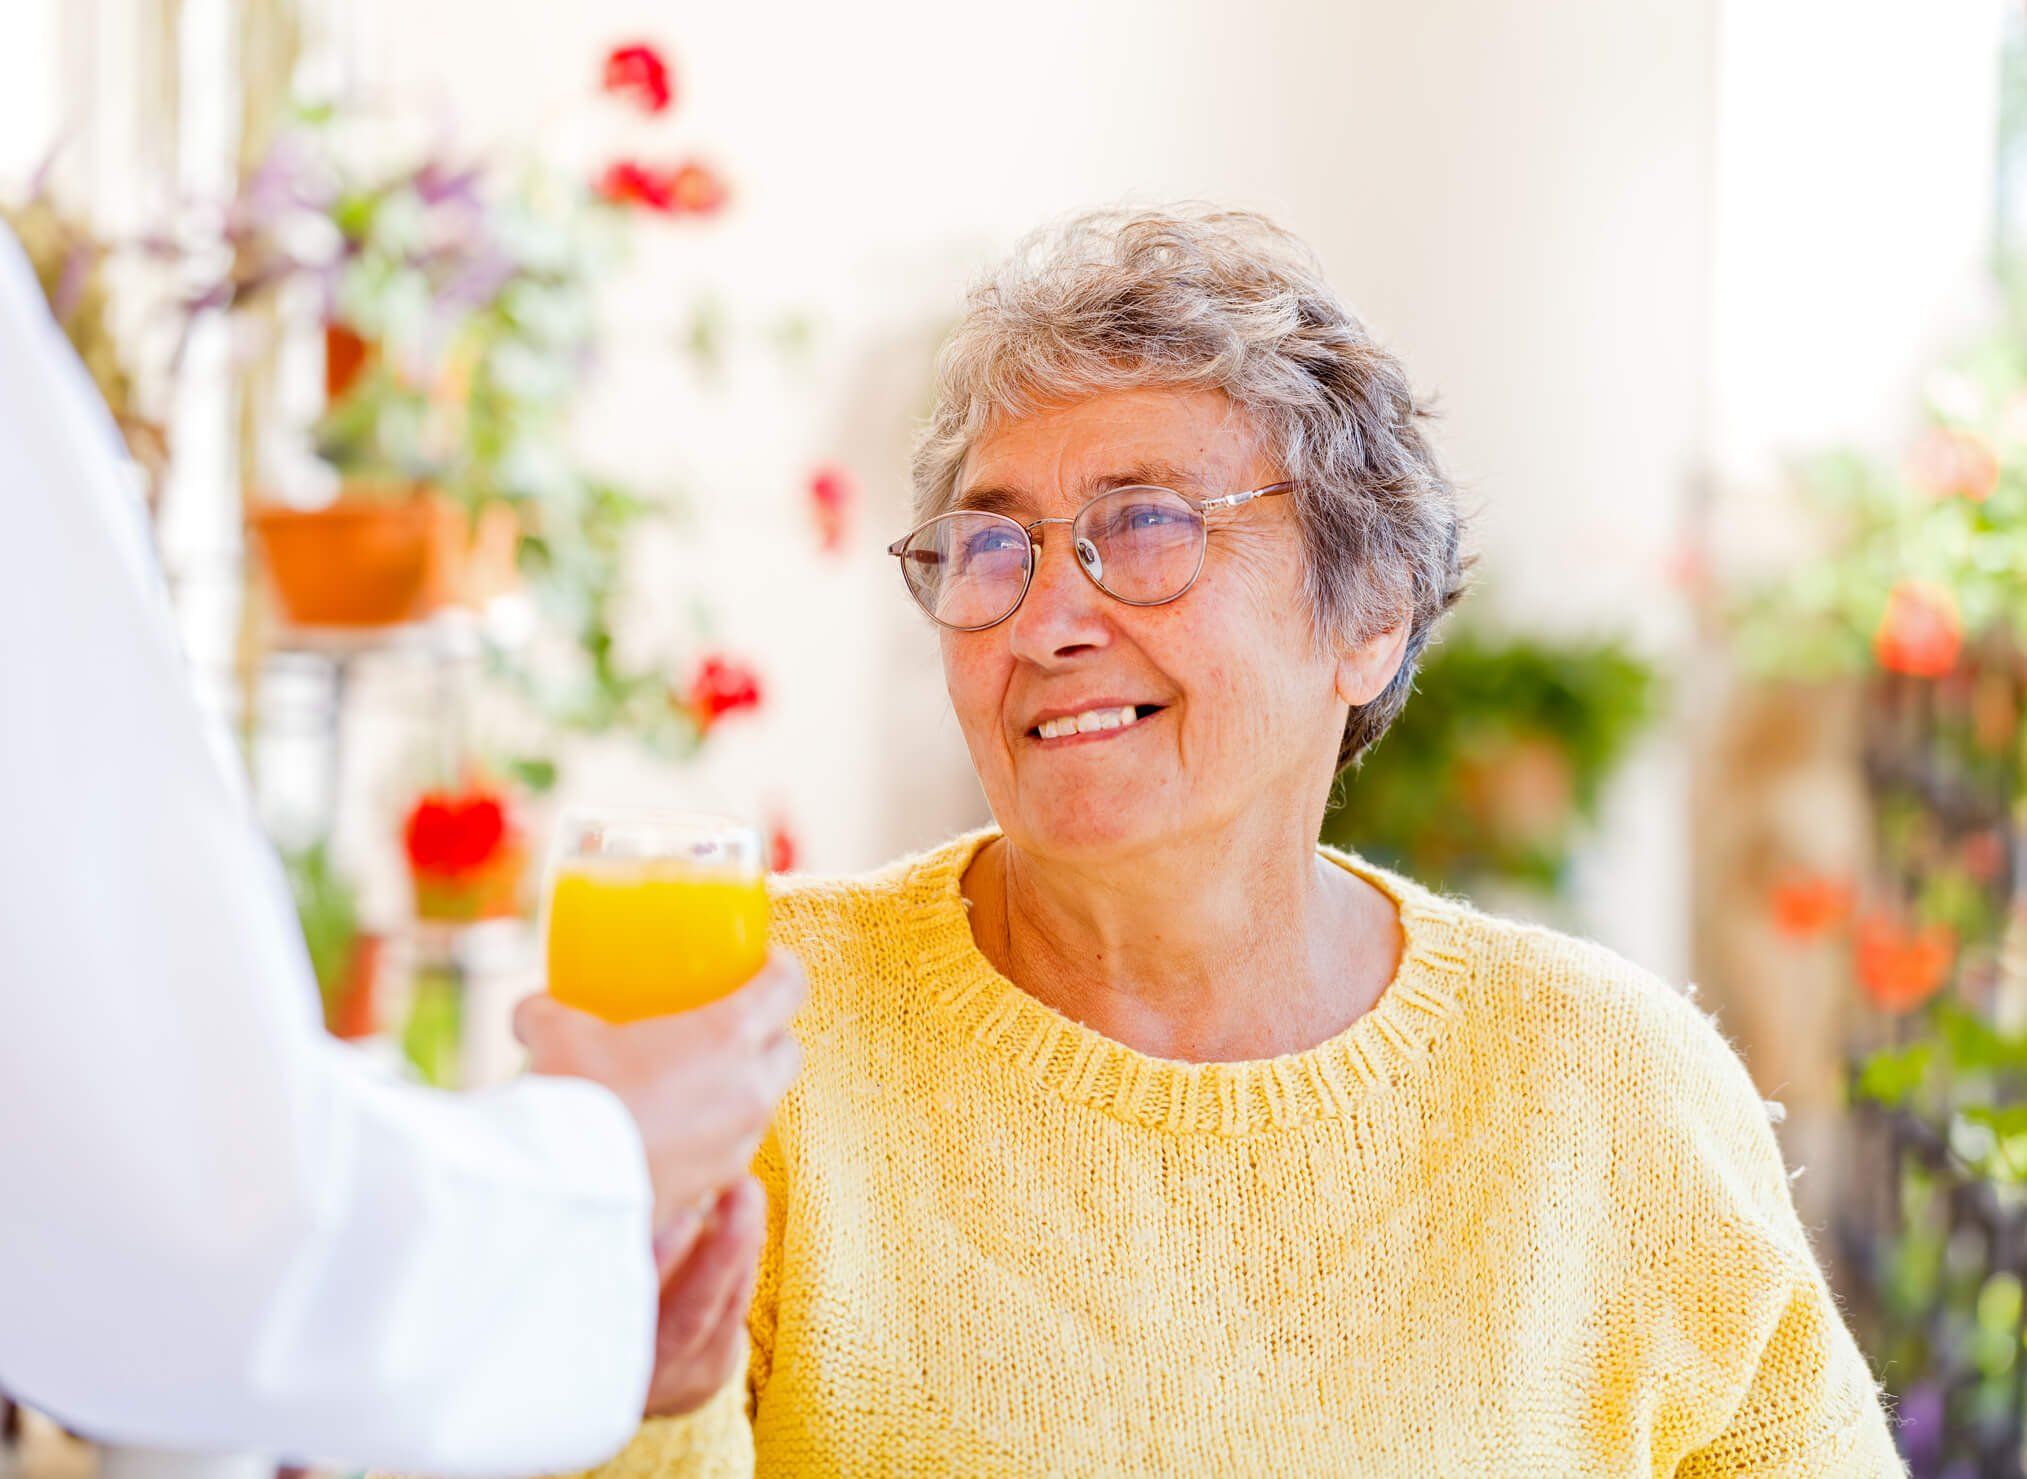 Assisted Living to Dementia Care